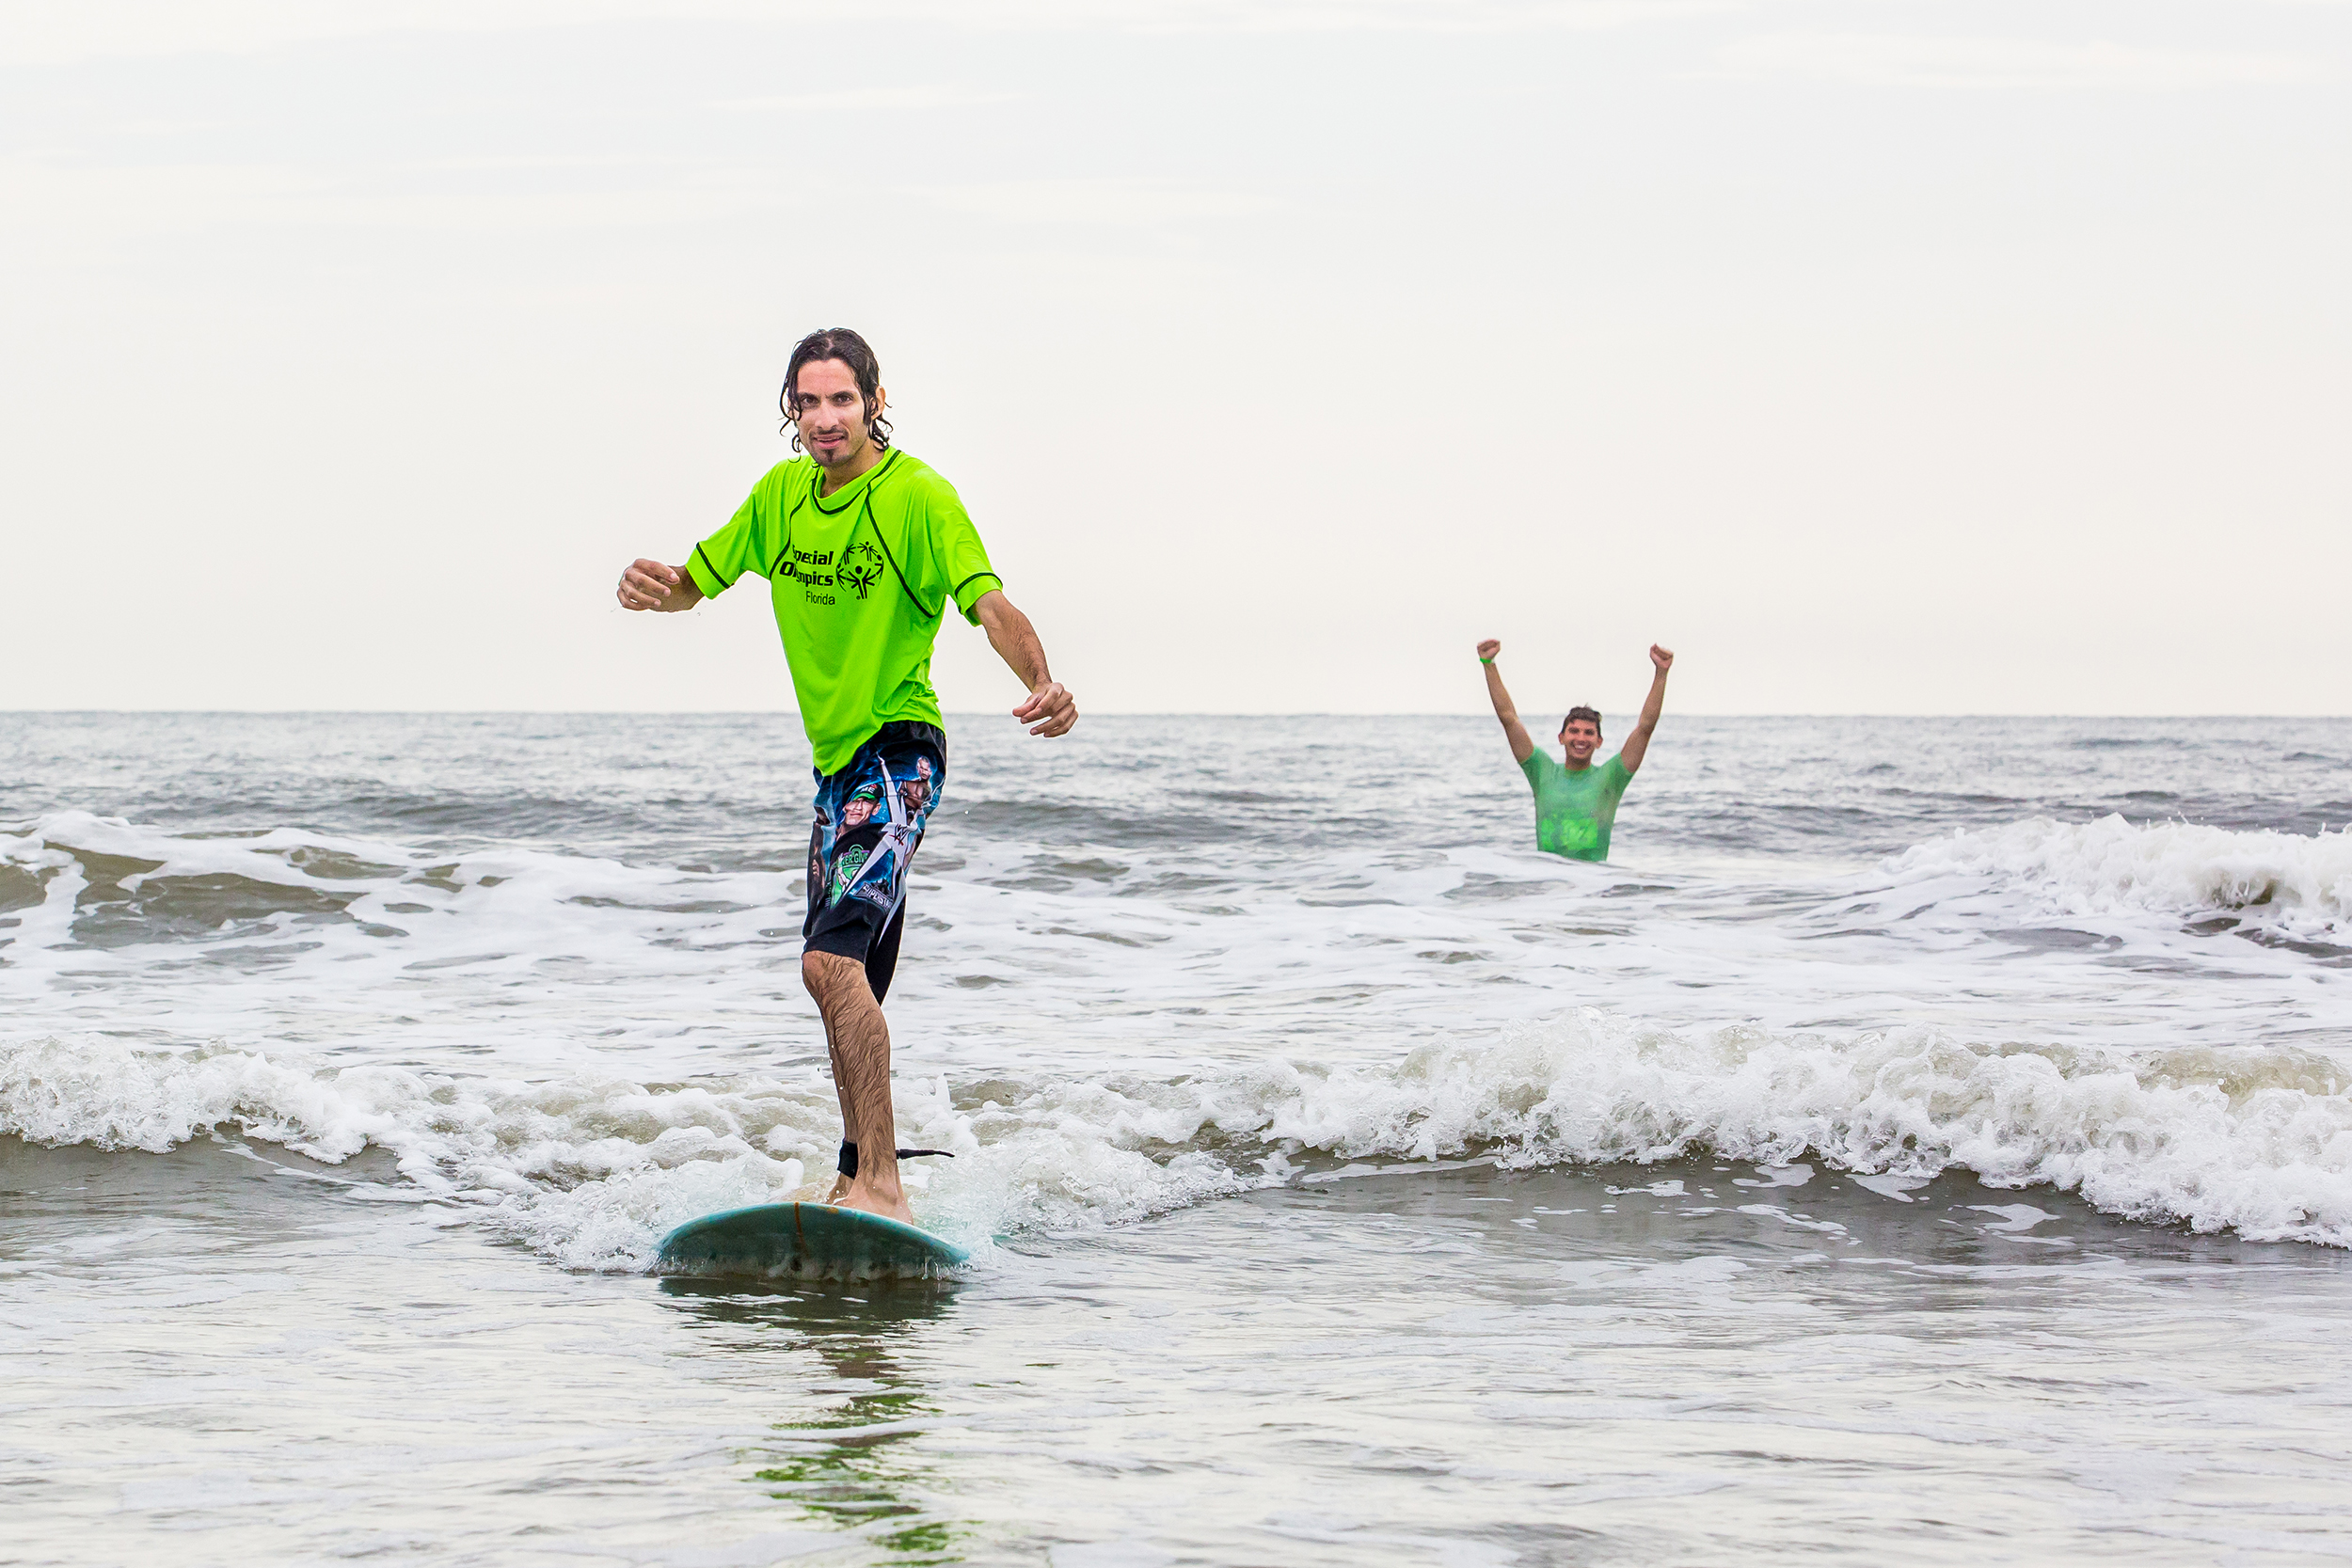 special olympics surfing competition-34.jpg